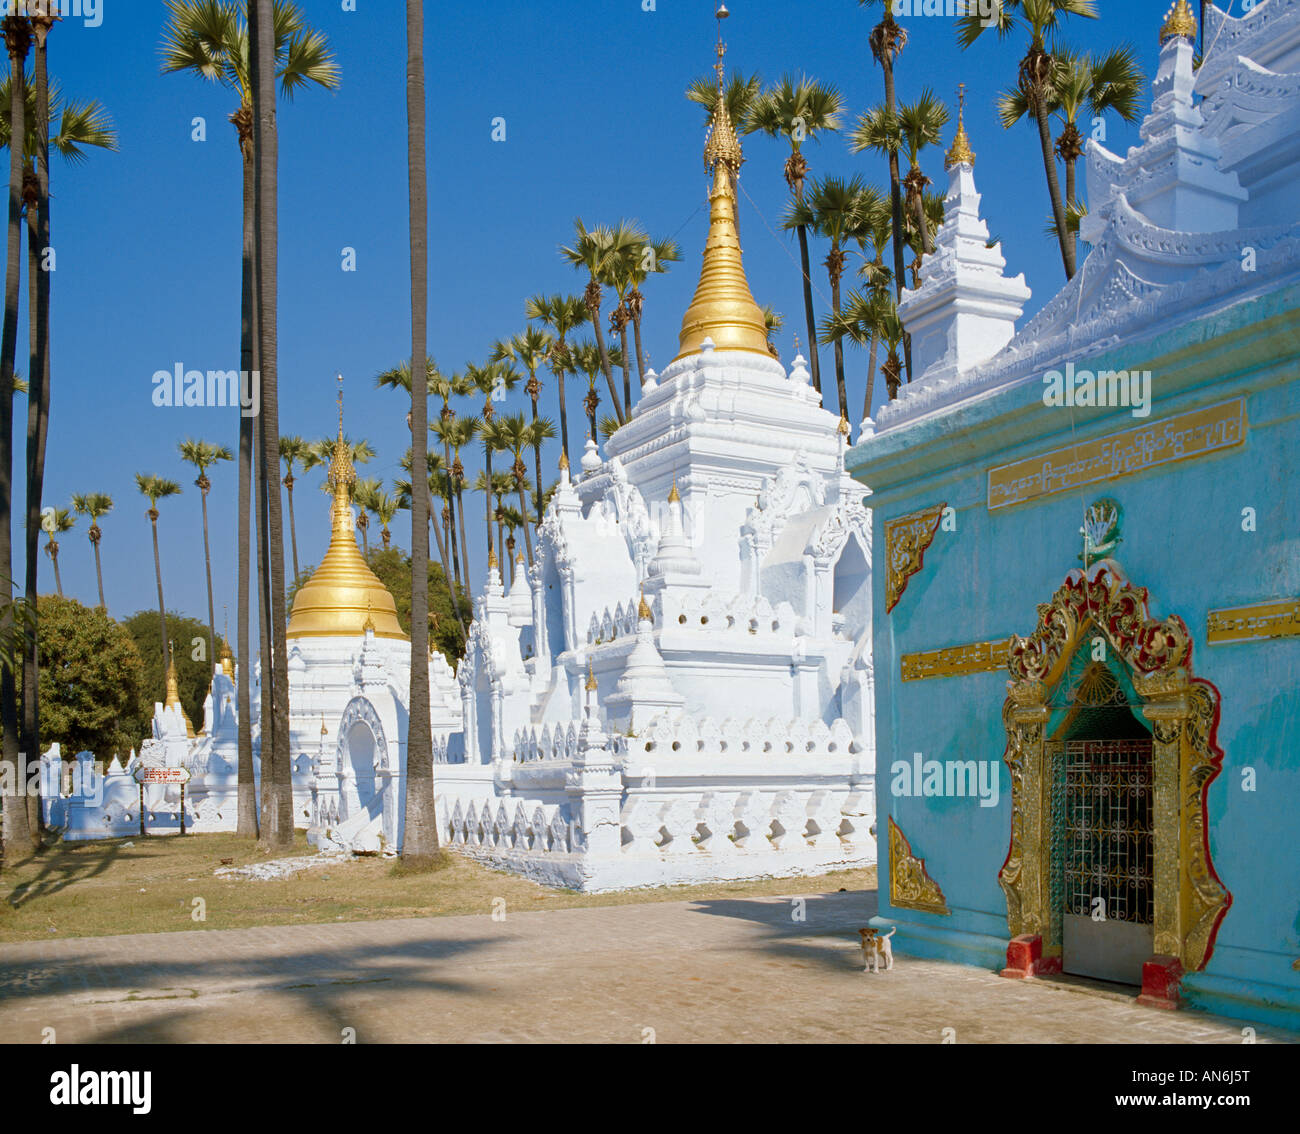 buddhistischer Tempel in Maderlay mit Palmen buddhistc temple in Manderlay with palms - Stock Image